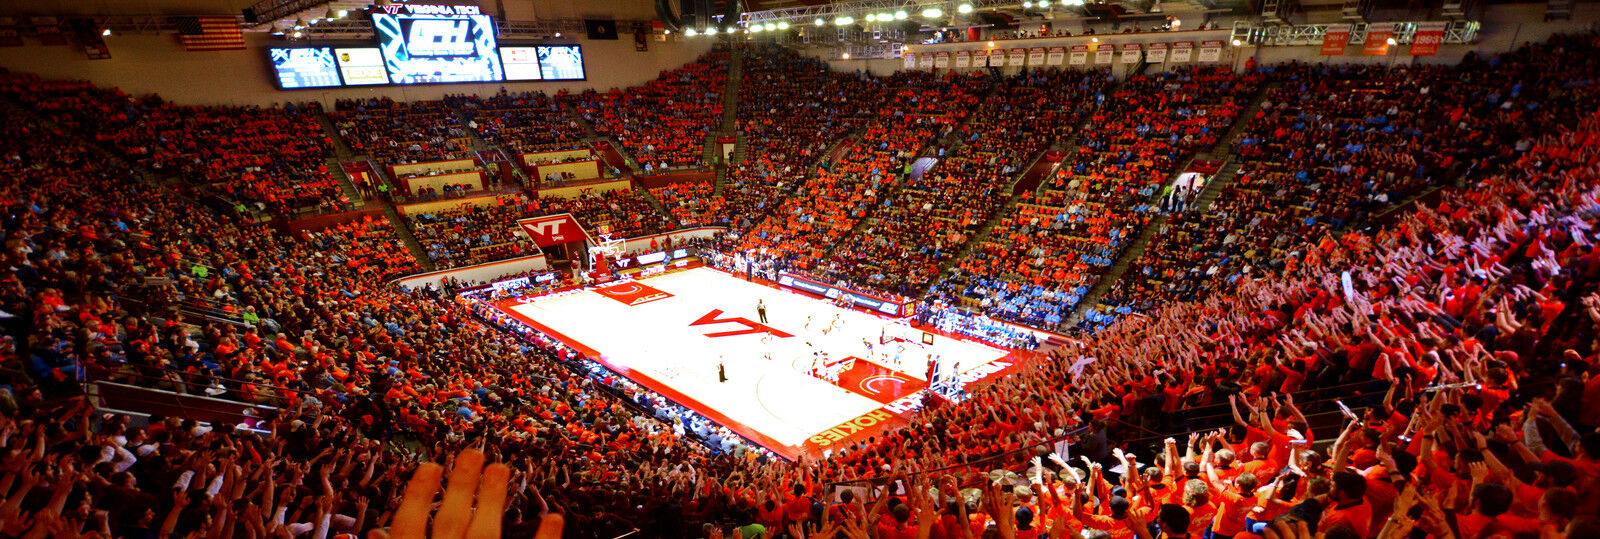 Louisville Cardinals at Virginia Tech Hokies Basketball